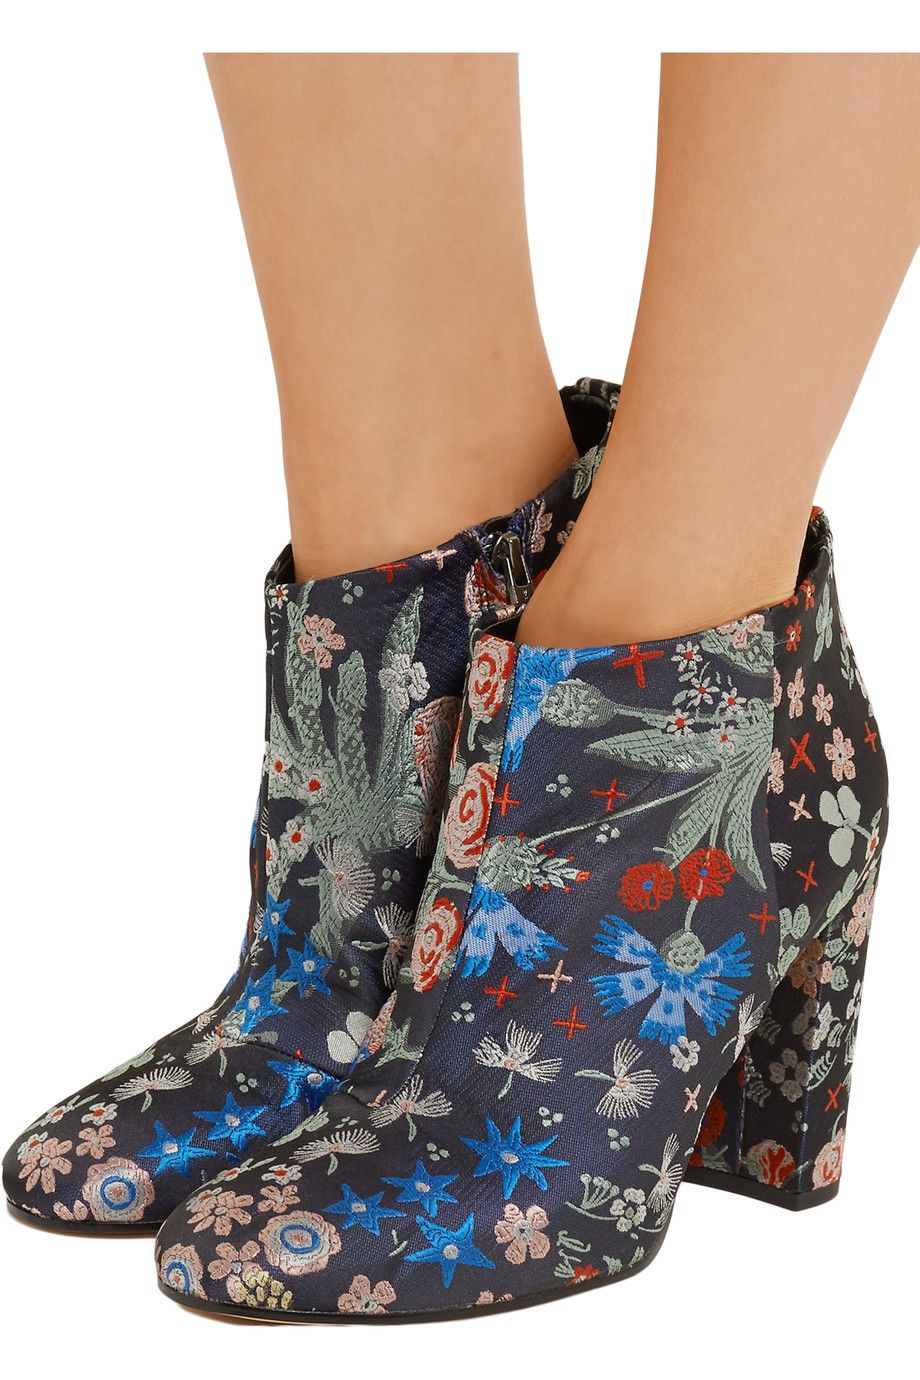 a85b7fd7ff787 Shop on-sale Sam Edelman Cambell floral-brocade ankle boots. Browse other  discount designer Boots   more on The Most Fashionable Fashion Outlet